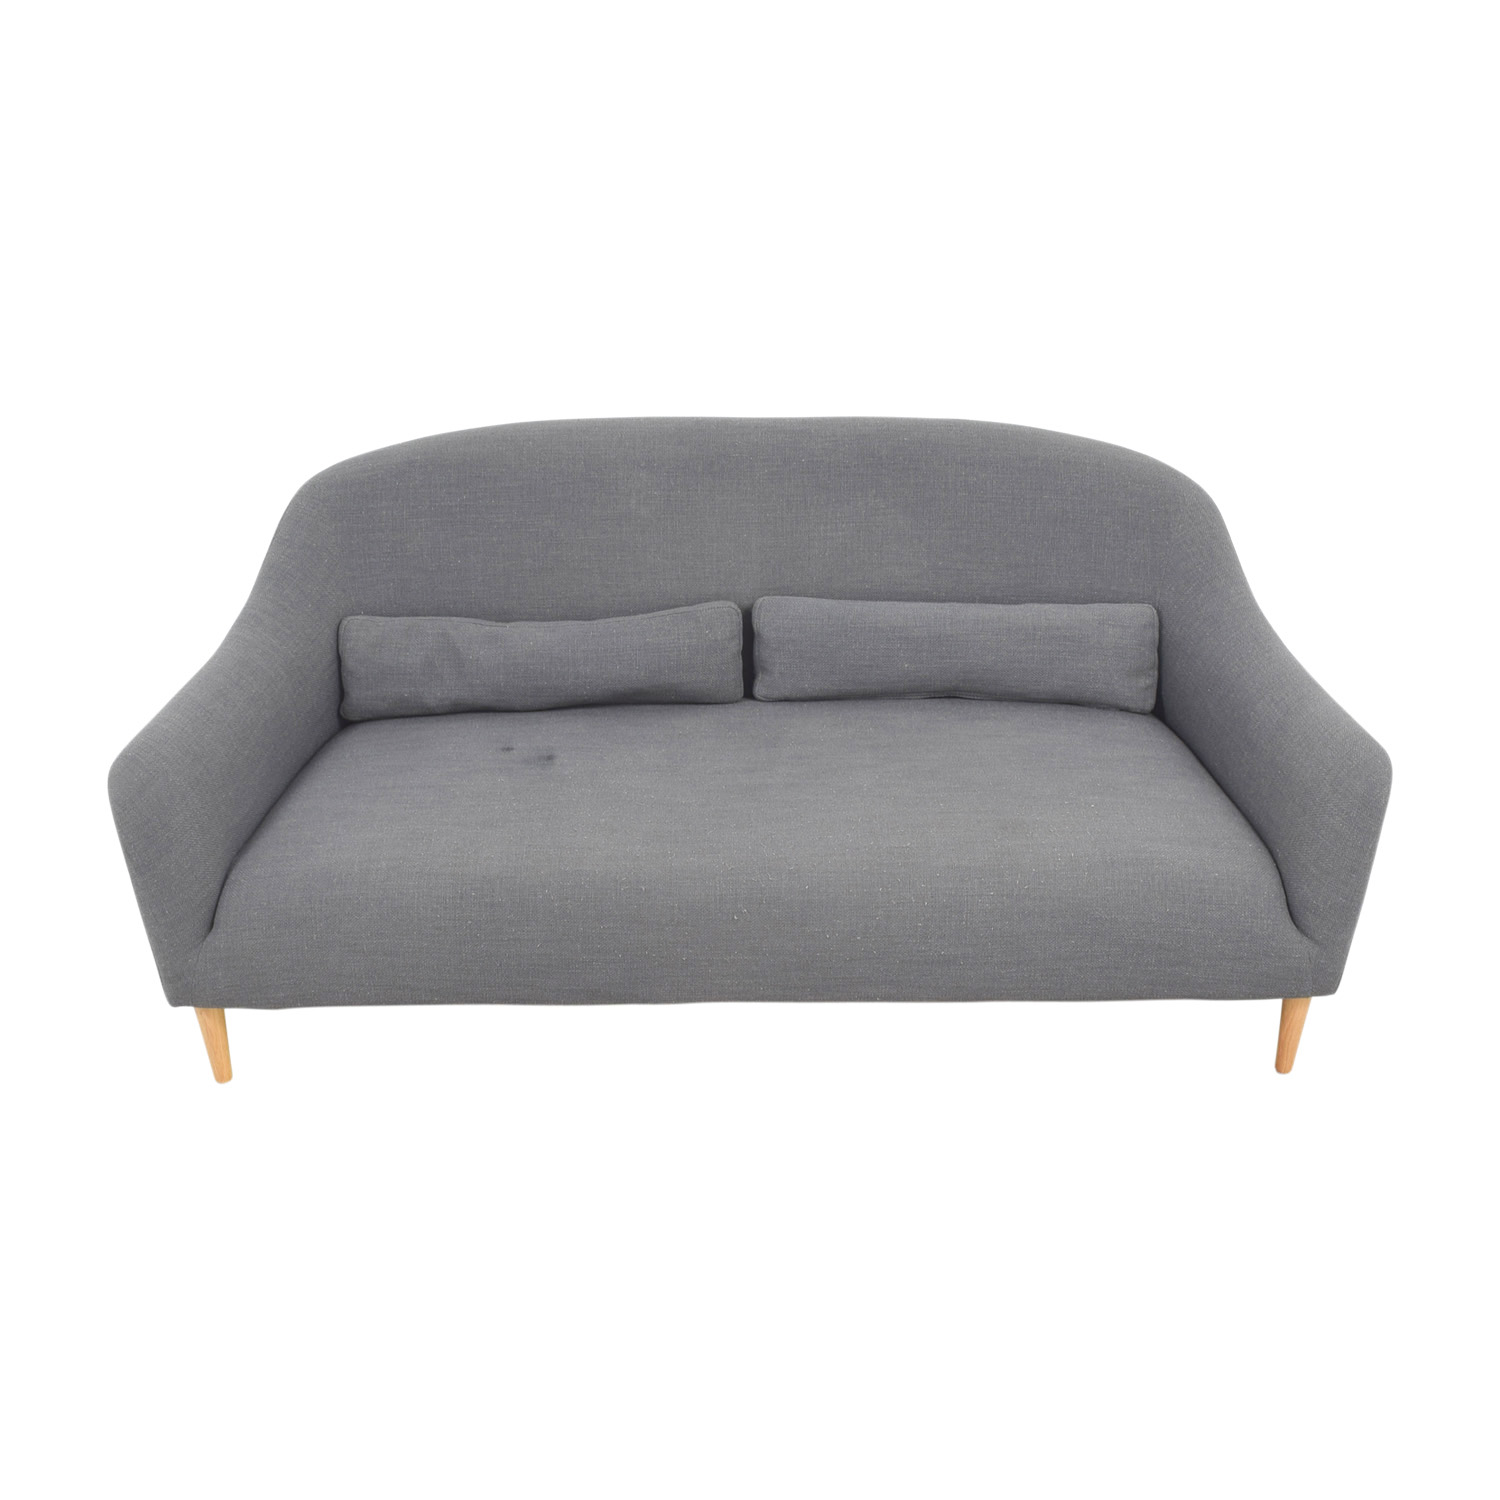 Crate & Barrel Crate & Barrel Pennie Single Cushion Sofa price